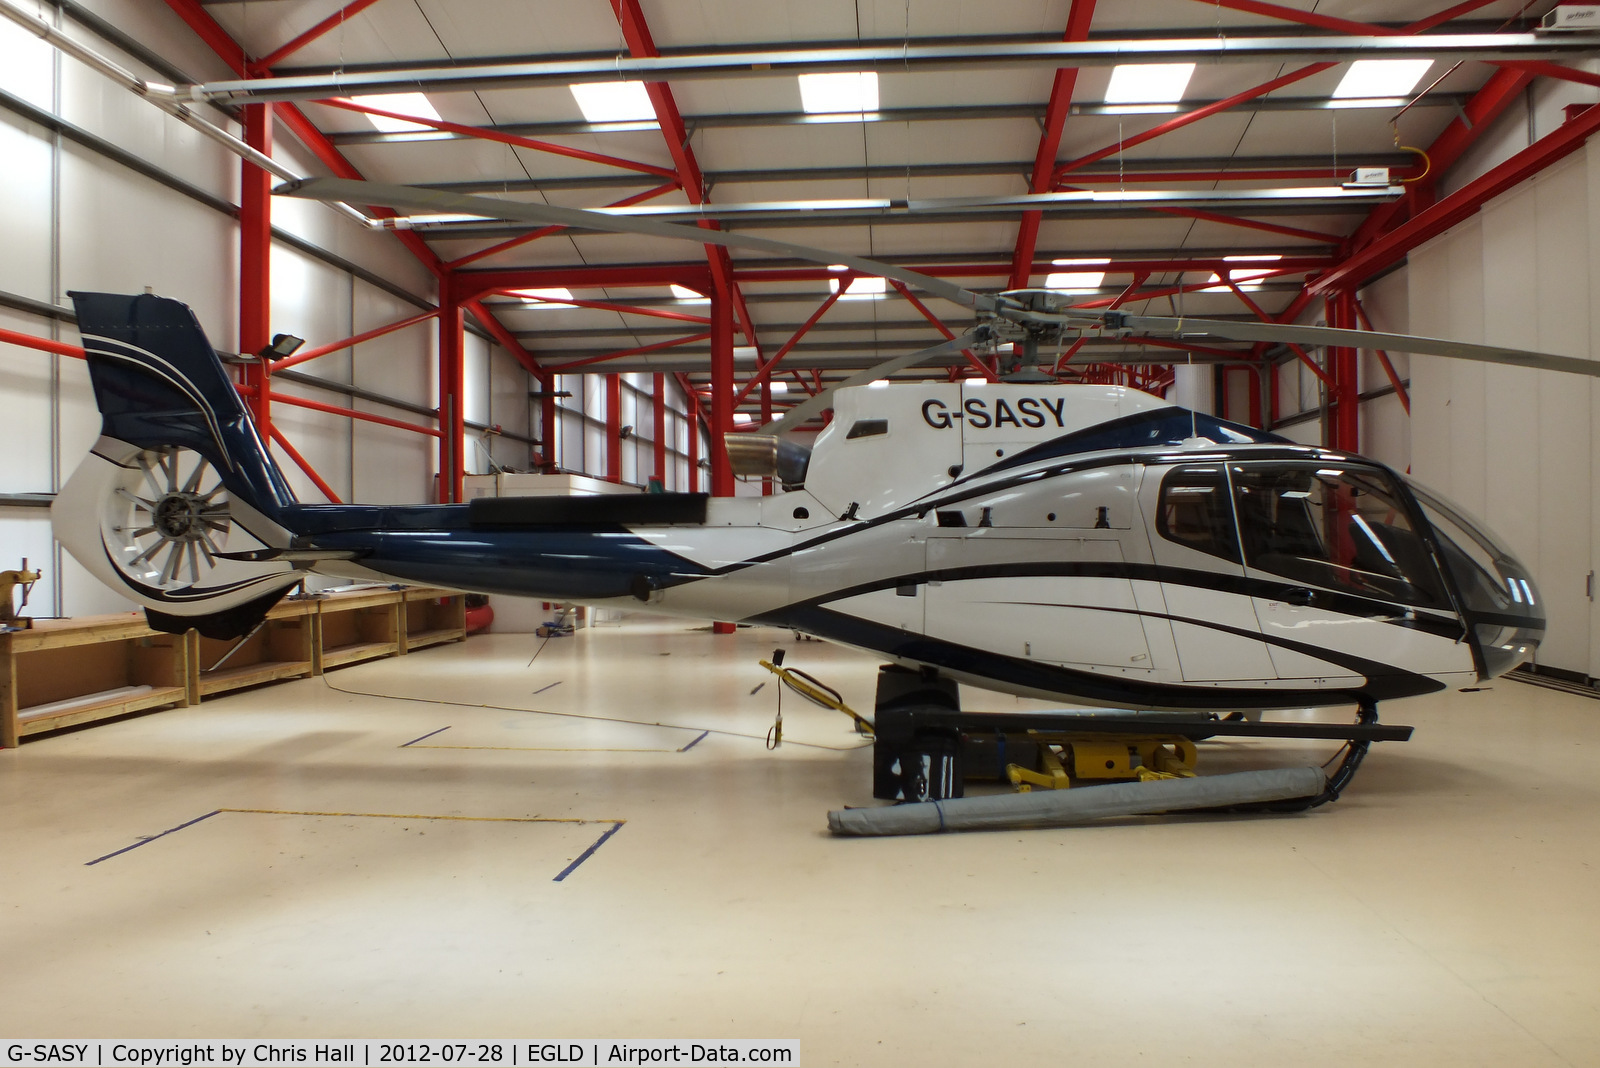 G-SASY, 2009 Eurocopter EC-130B-4 (AS-350B-4) C/N 4760, privately owned